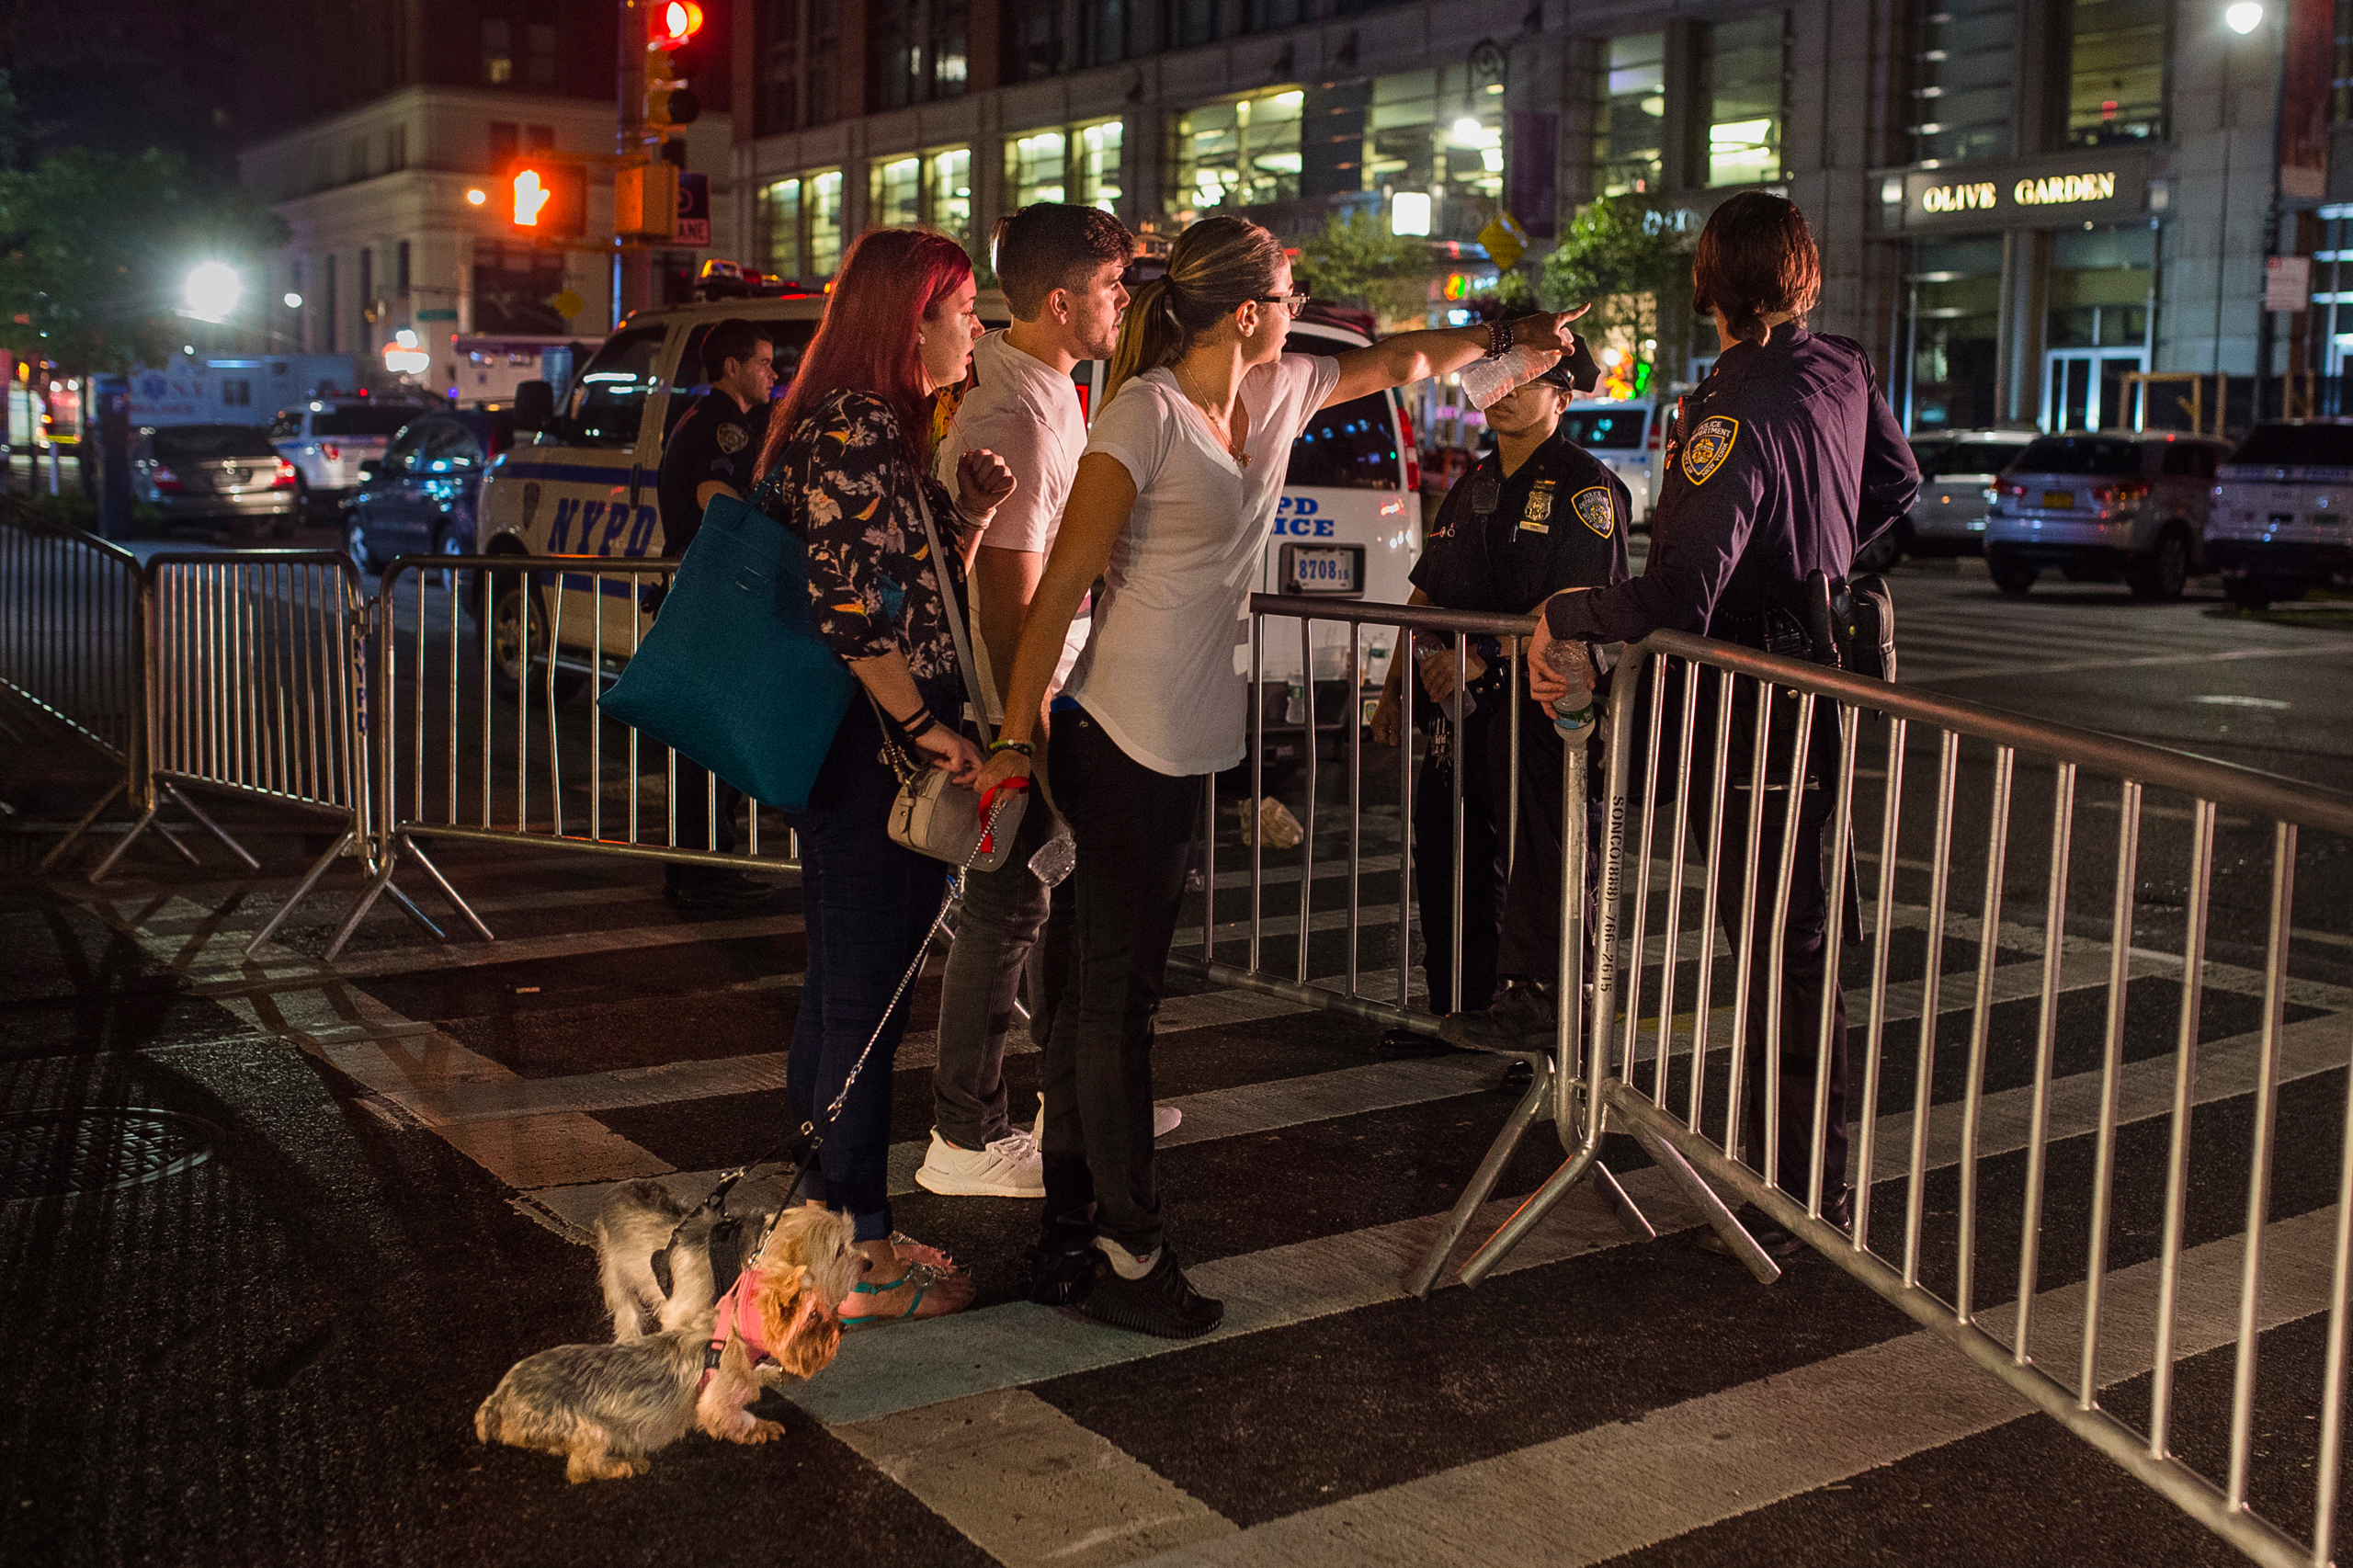 People try to access the area near the scene of an explosion on West 23rd Street and 6th Avenue in Manhattan's Chelsea neighborhood, in New York, early Sunday, Sept. 18, 2016. An explosion rocked the block of West 23rd Street between Sixth and Seventh Avenues at 8:30 p.m. Saturday. Officials said more than two dozen people were injured. Most of the injuries were minor. (AP Photo/Andres Kudacki)